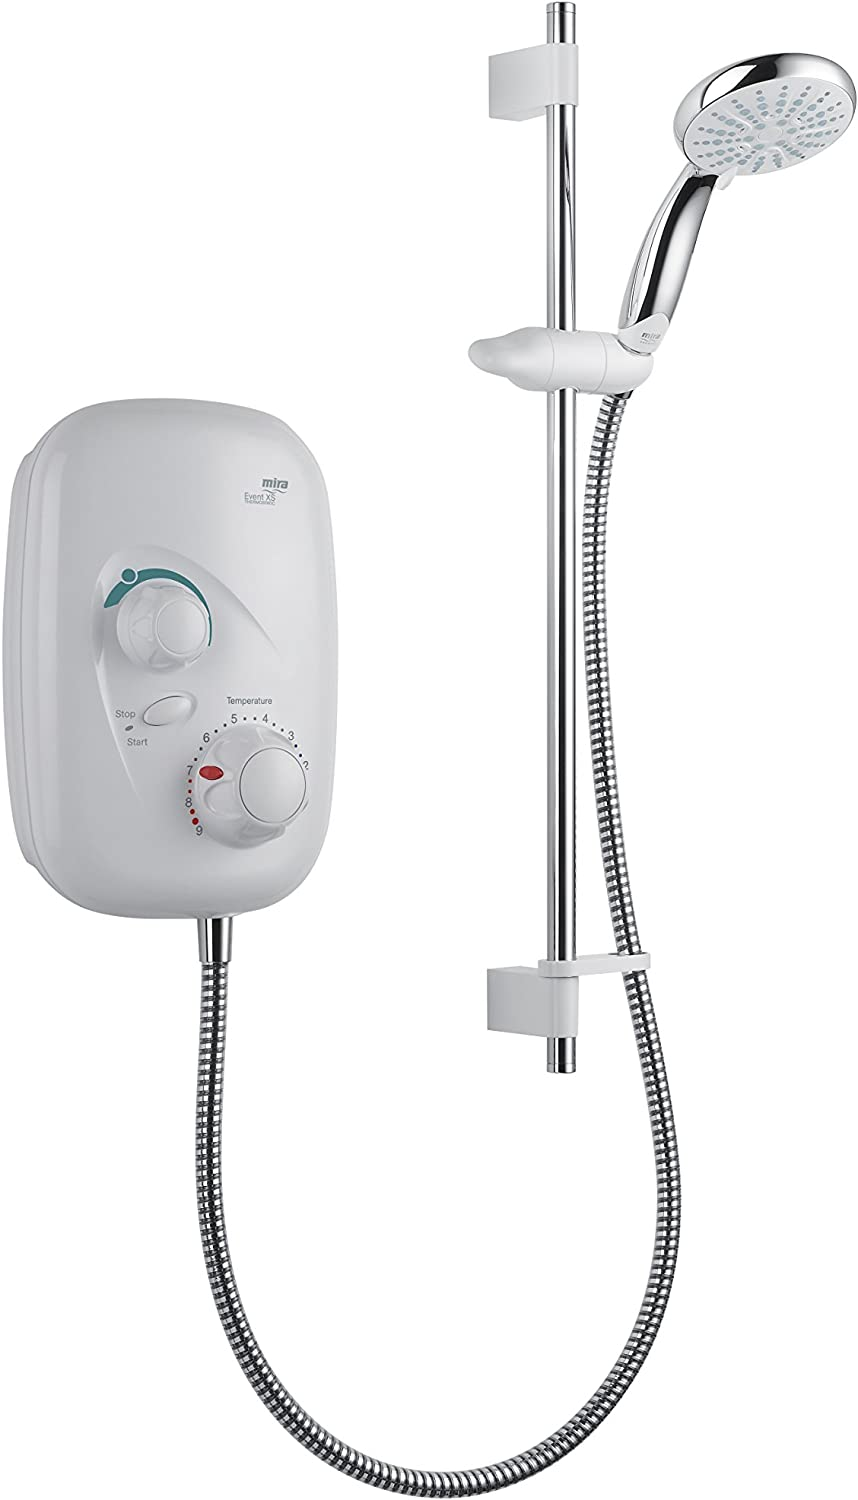 Mira Showers 1.1532.400 XS Event Thermostatic Power Shower - White